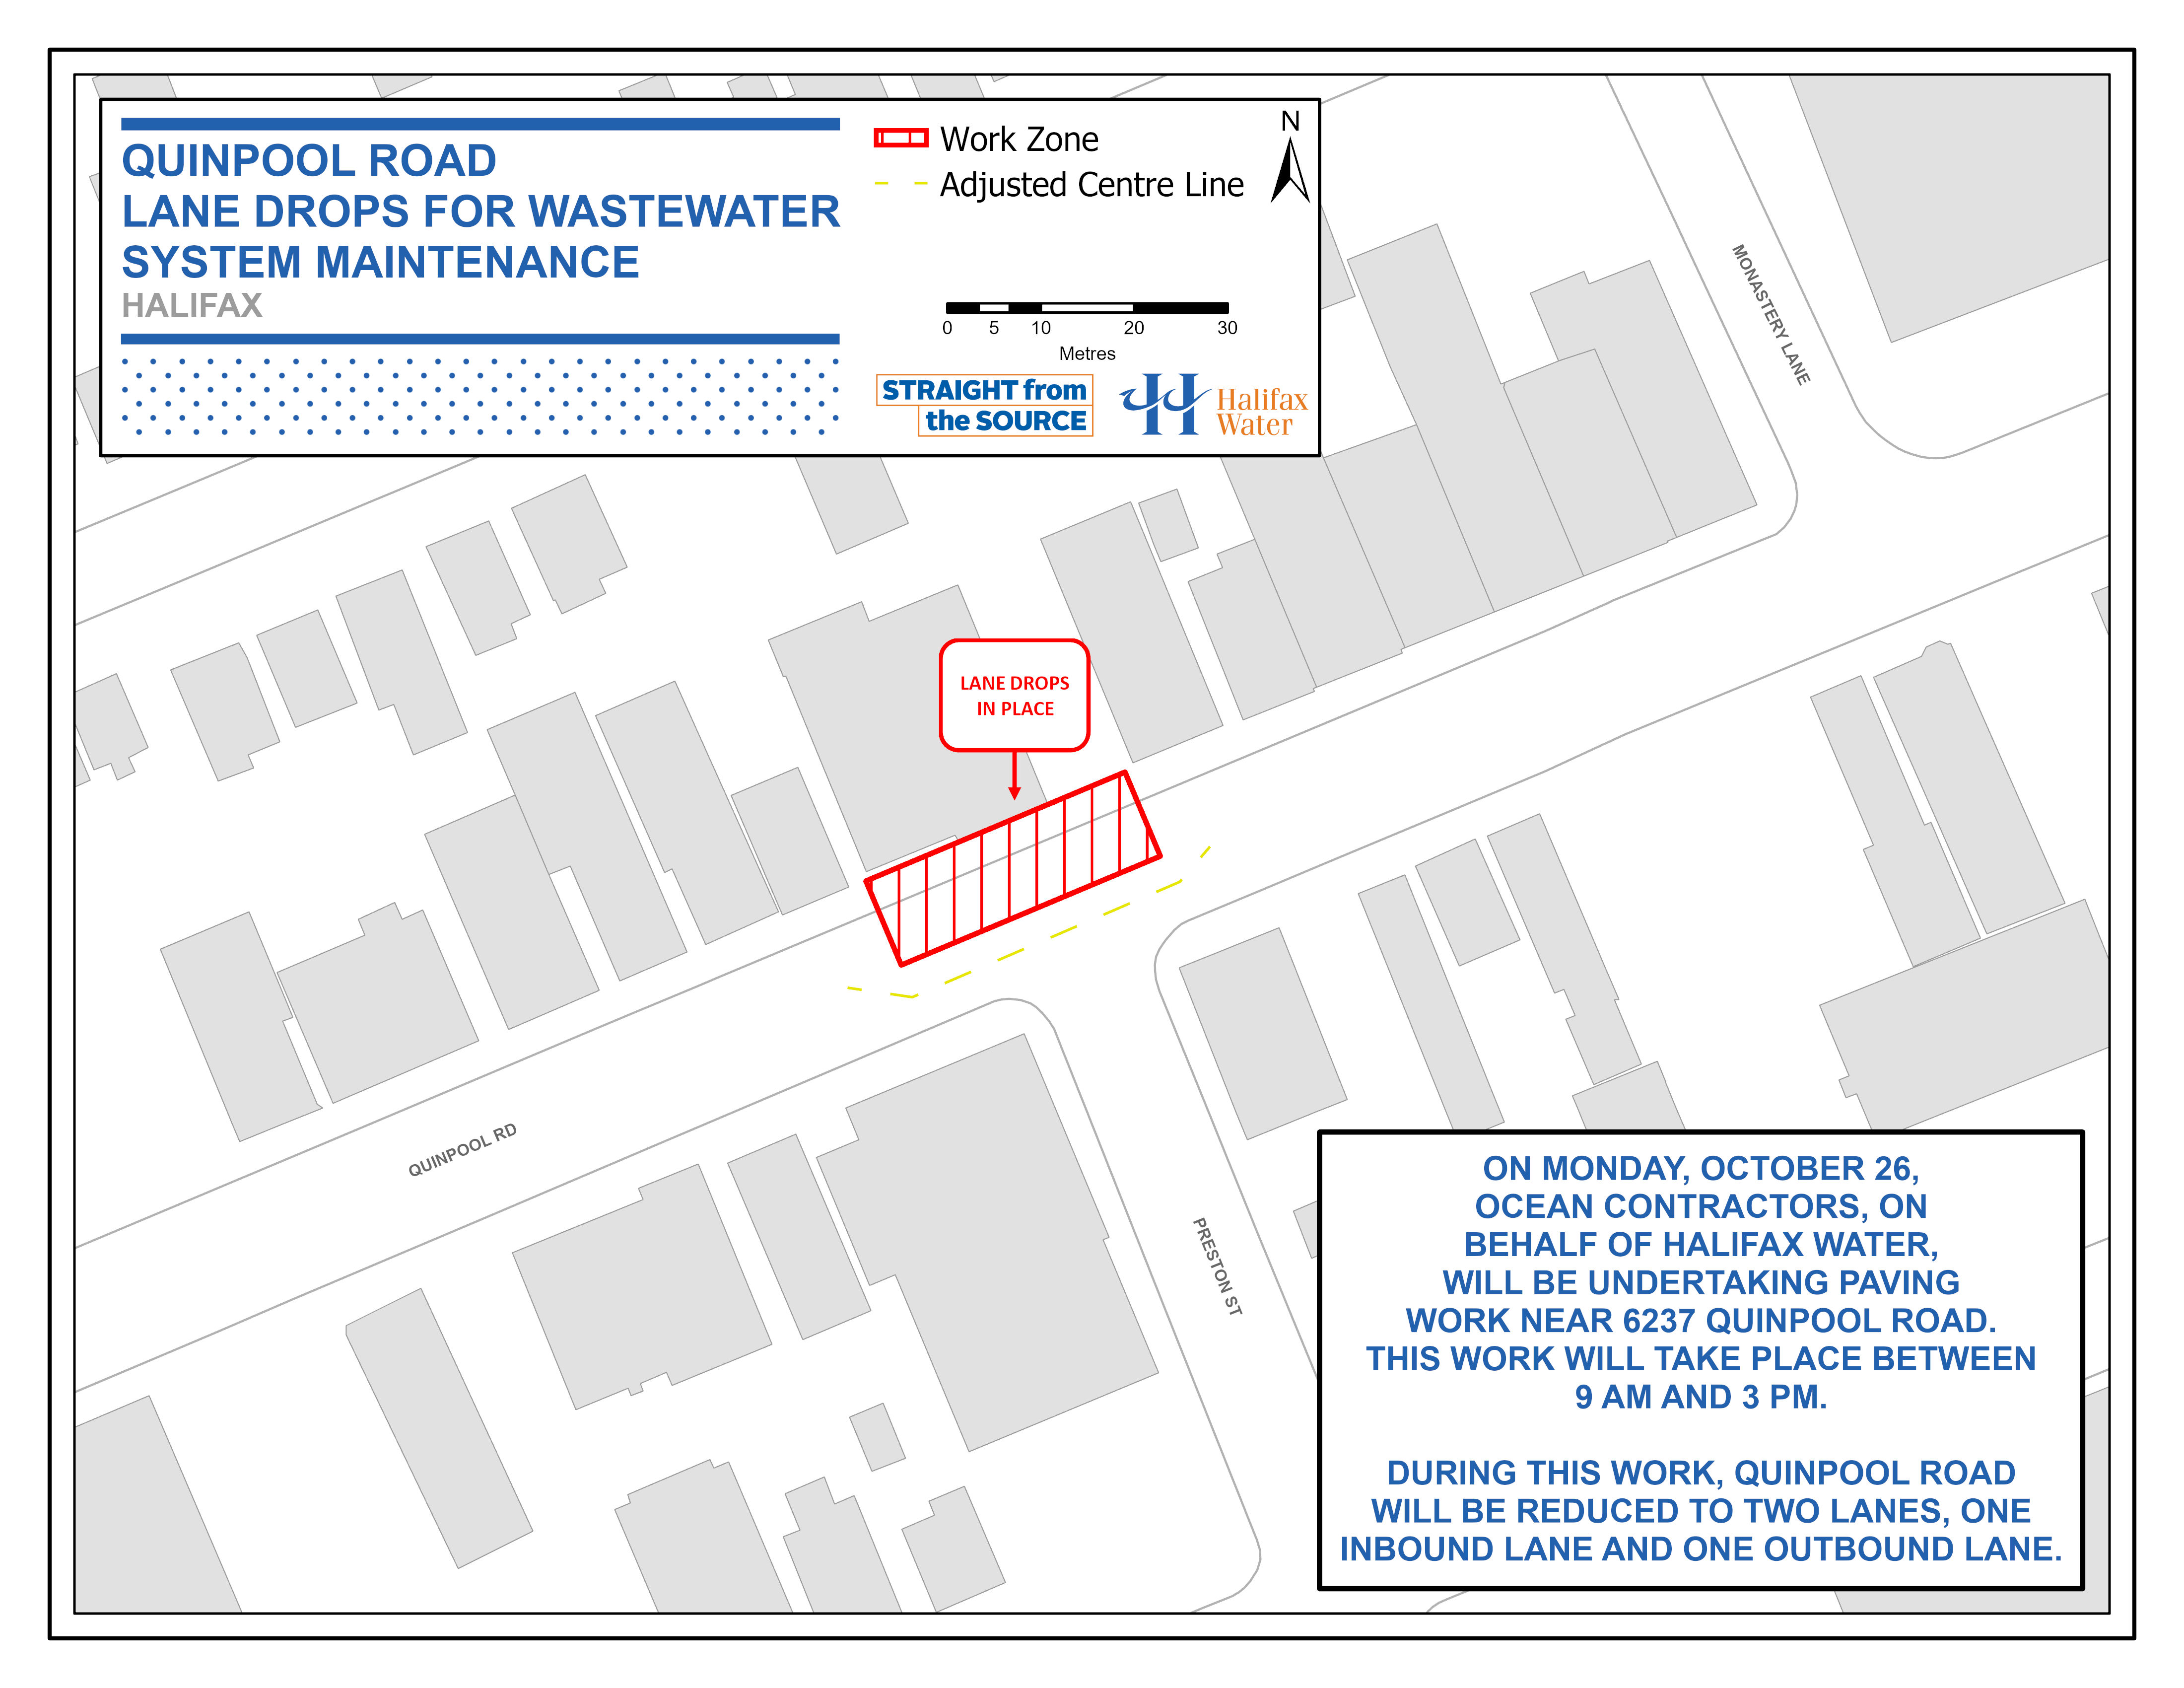 Halifax Water PSA Map - Quinpool Road – Lane Drops for Paving Work